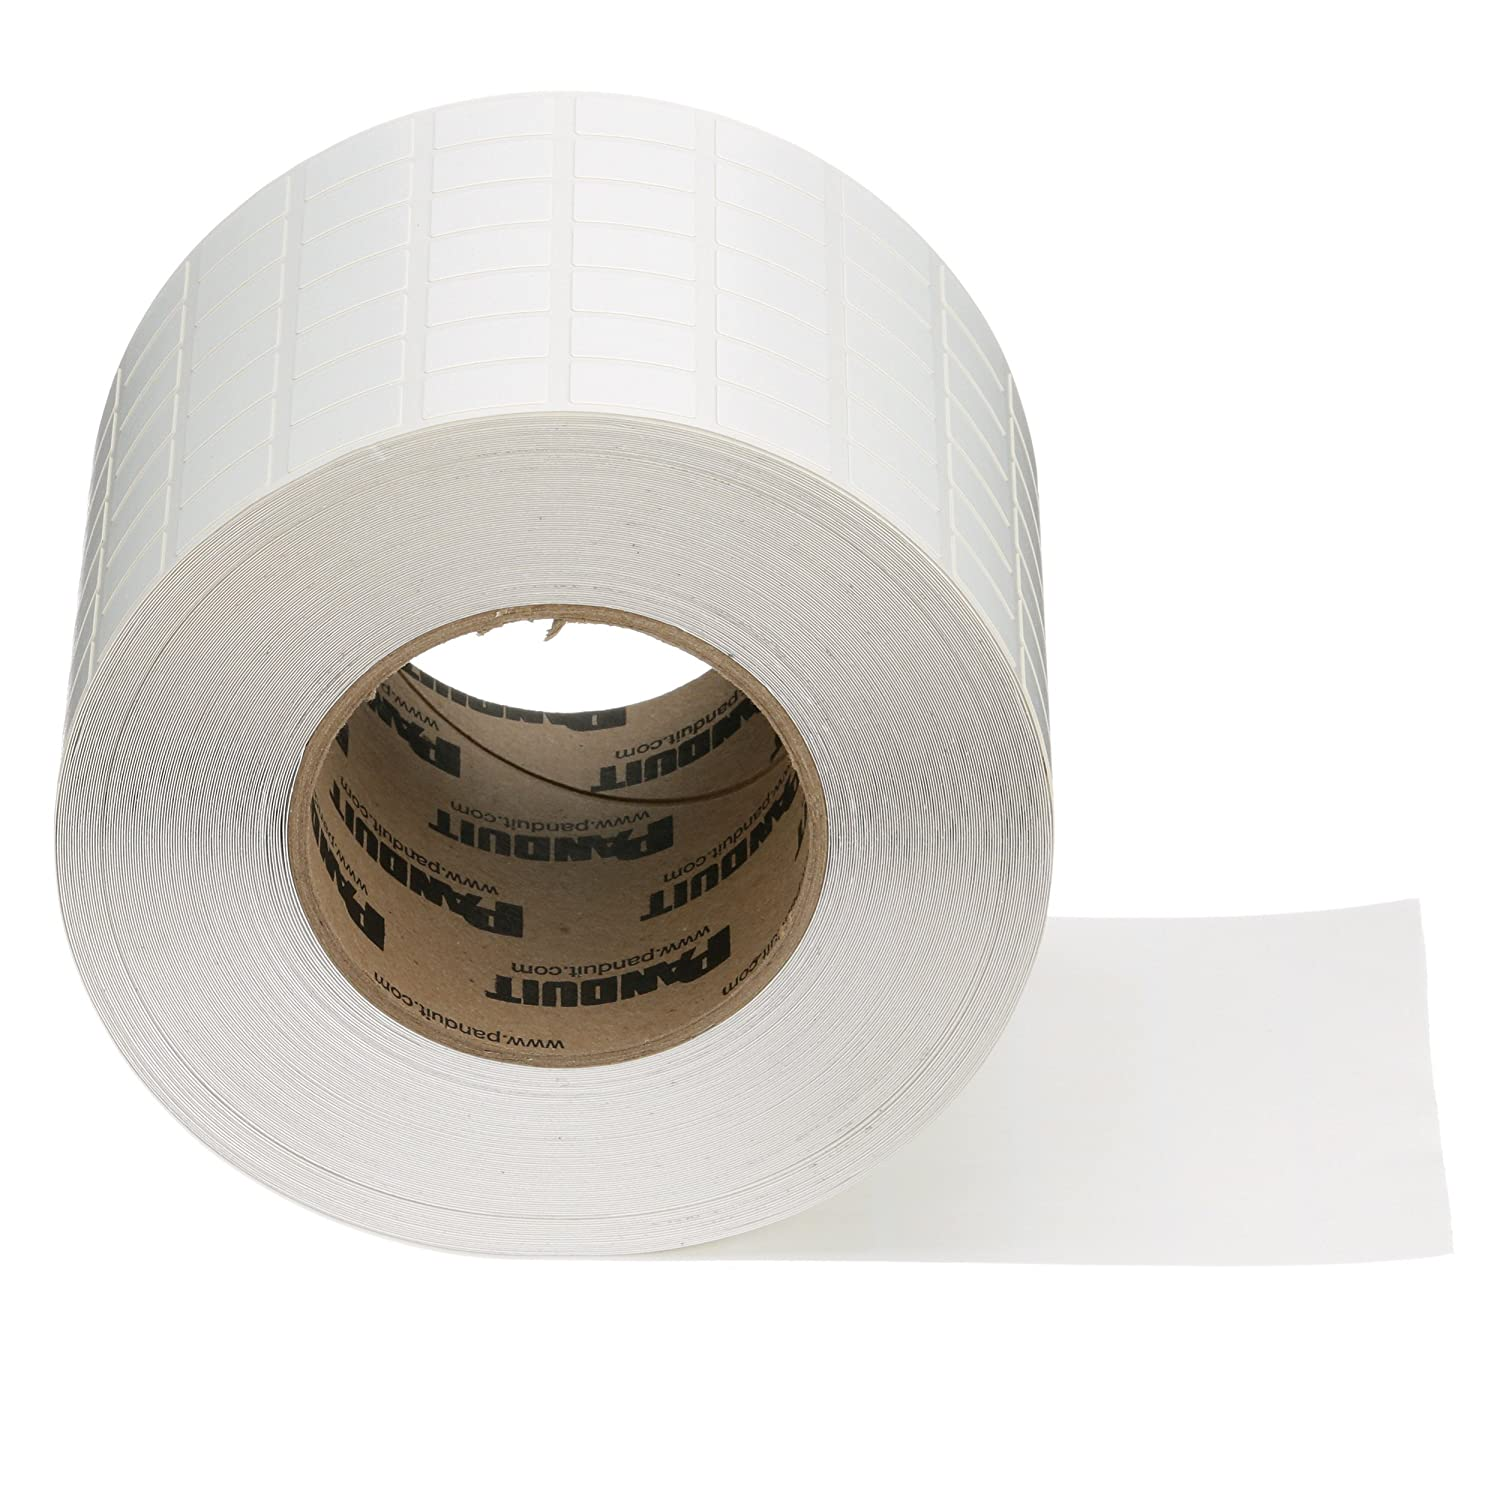 Panduit N100X075CBT Thermal Transfer Non-Laminated Label, Vinyl Cloth, White (10,000-Pack)